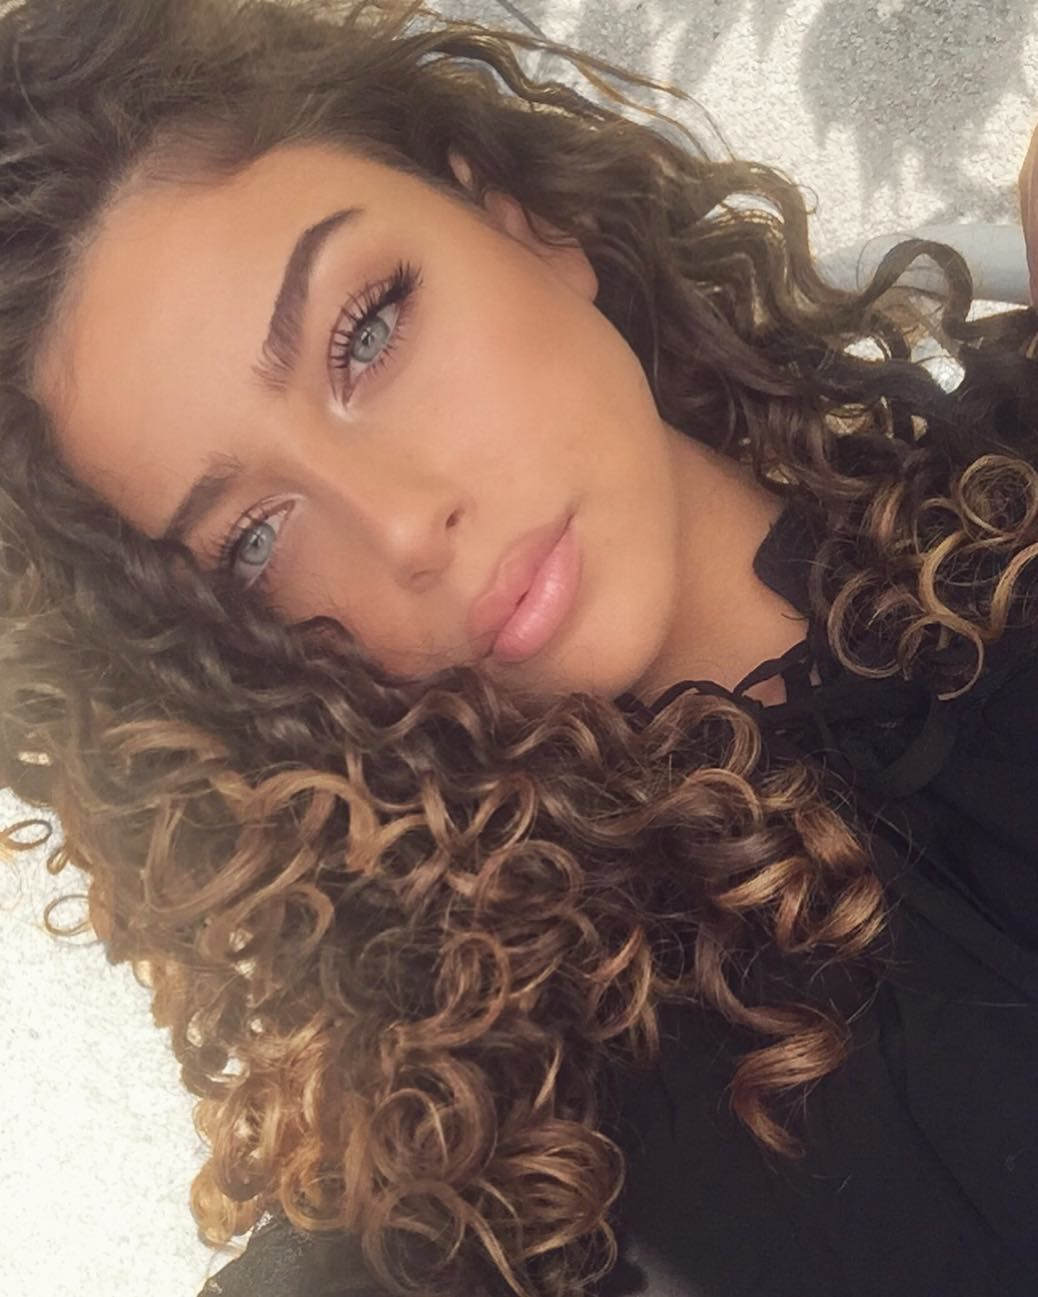 Fantastic Long Curly Hairstyles Haircuts For Women In 2019 Frizzy Curly Hair Long Hair Styles Beautiful Curly Hair